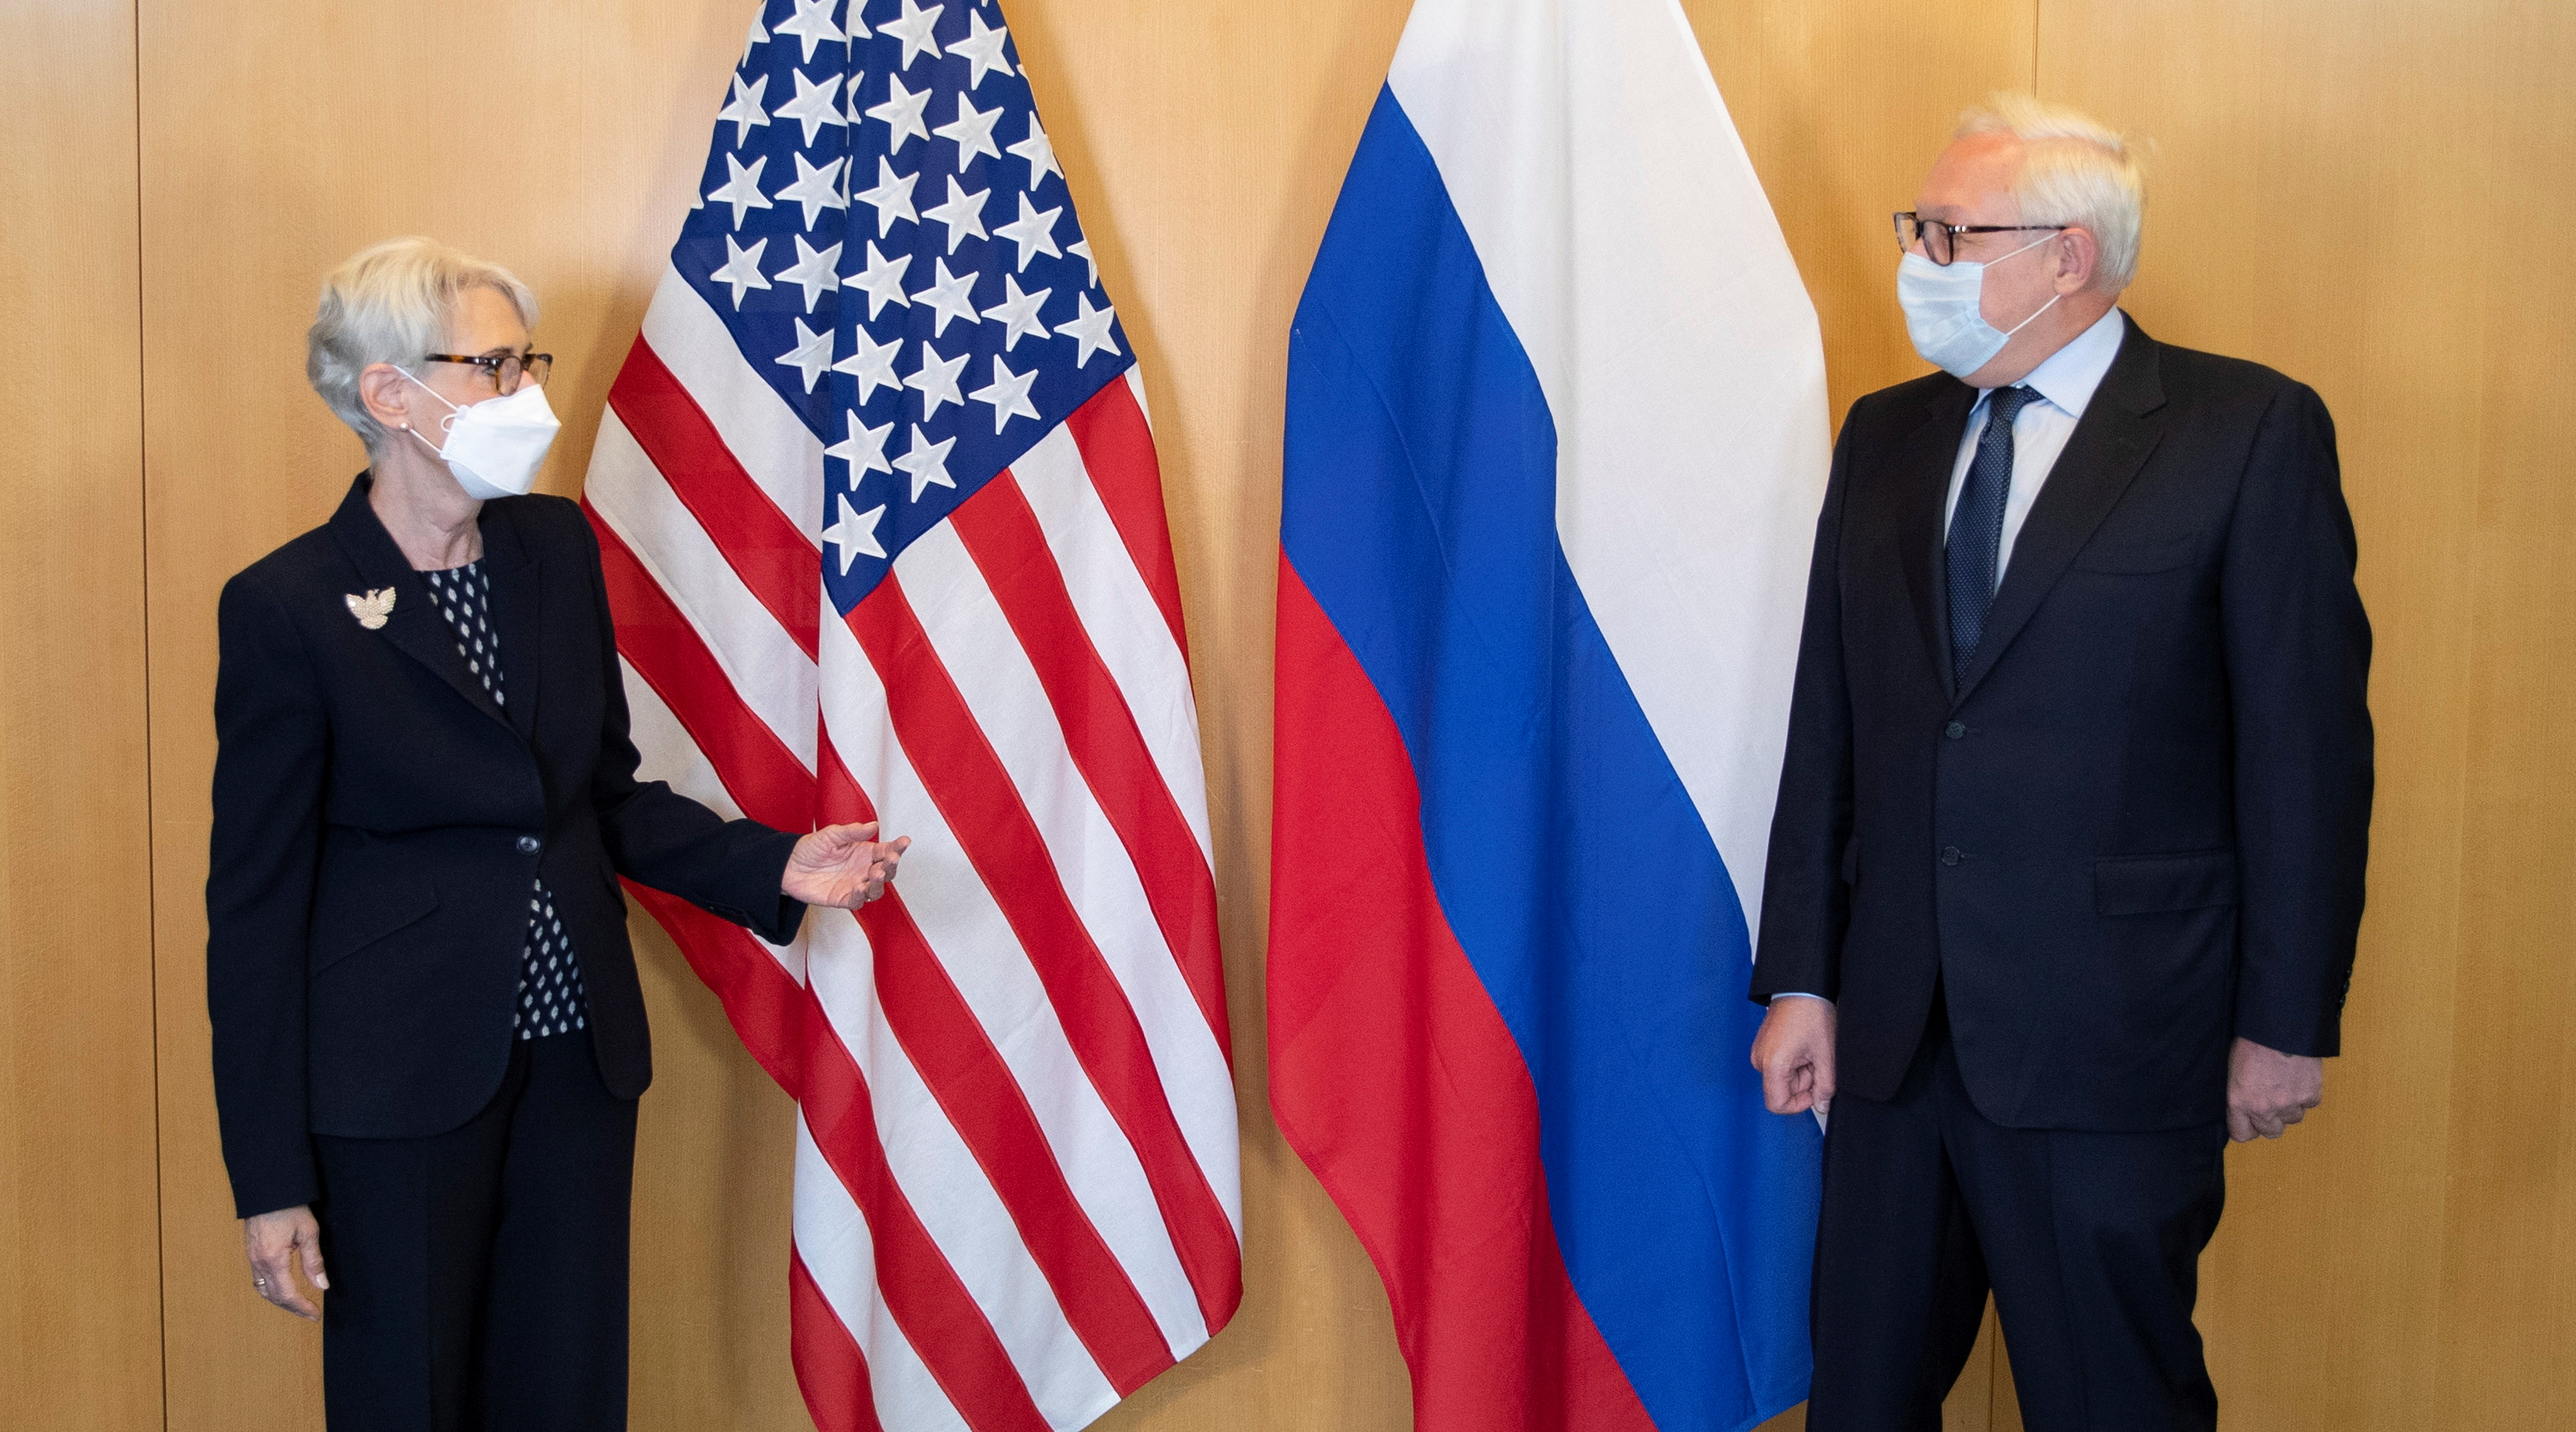 U.S. Deputy Secretary of State Wendy Sherman (L) and Russian Deputy Foreign Minister Sergei Ryabkov pose in front of their national flags before a meeting at the U.S. diplomatic mission in Geneva, Switzerland July 28, 2021. U.S. Mission Geneva/Handout via REUTERS